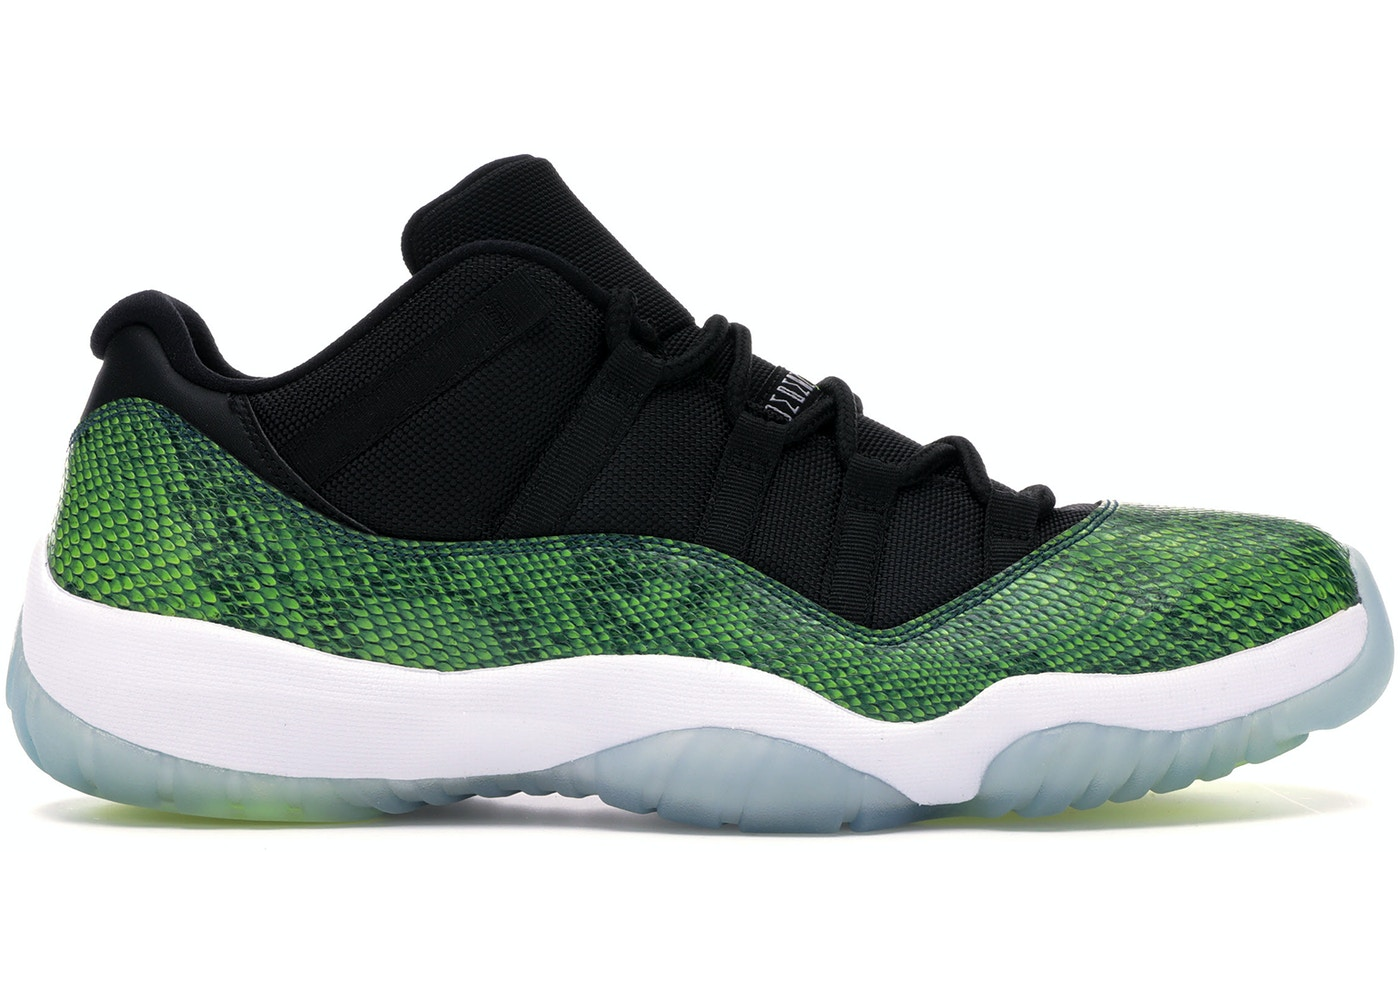 official photos 344d6 7271f Jordan 11 Retro Low Green Snakeskin